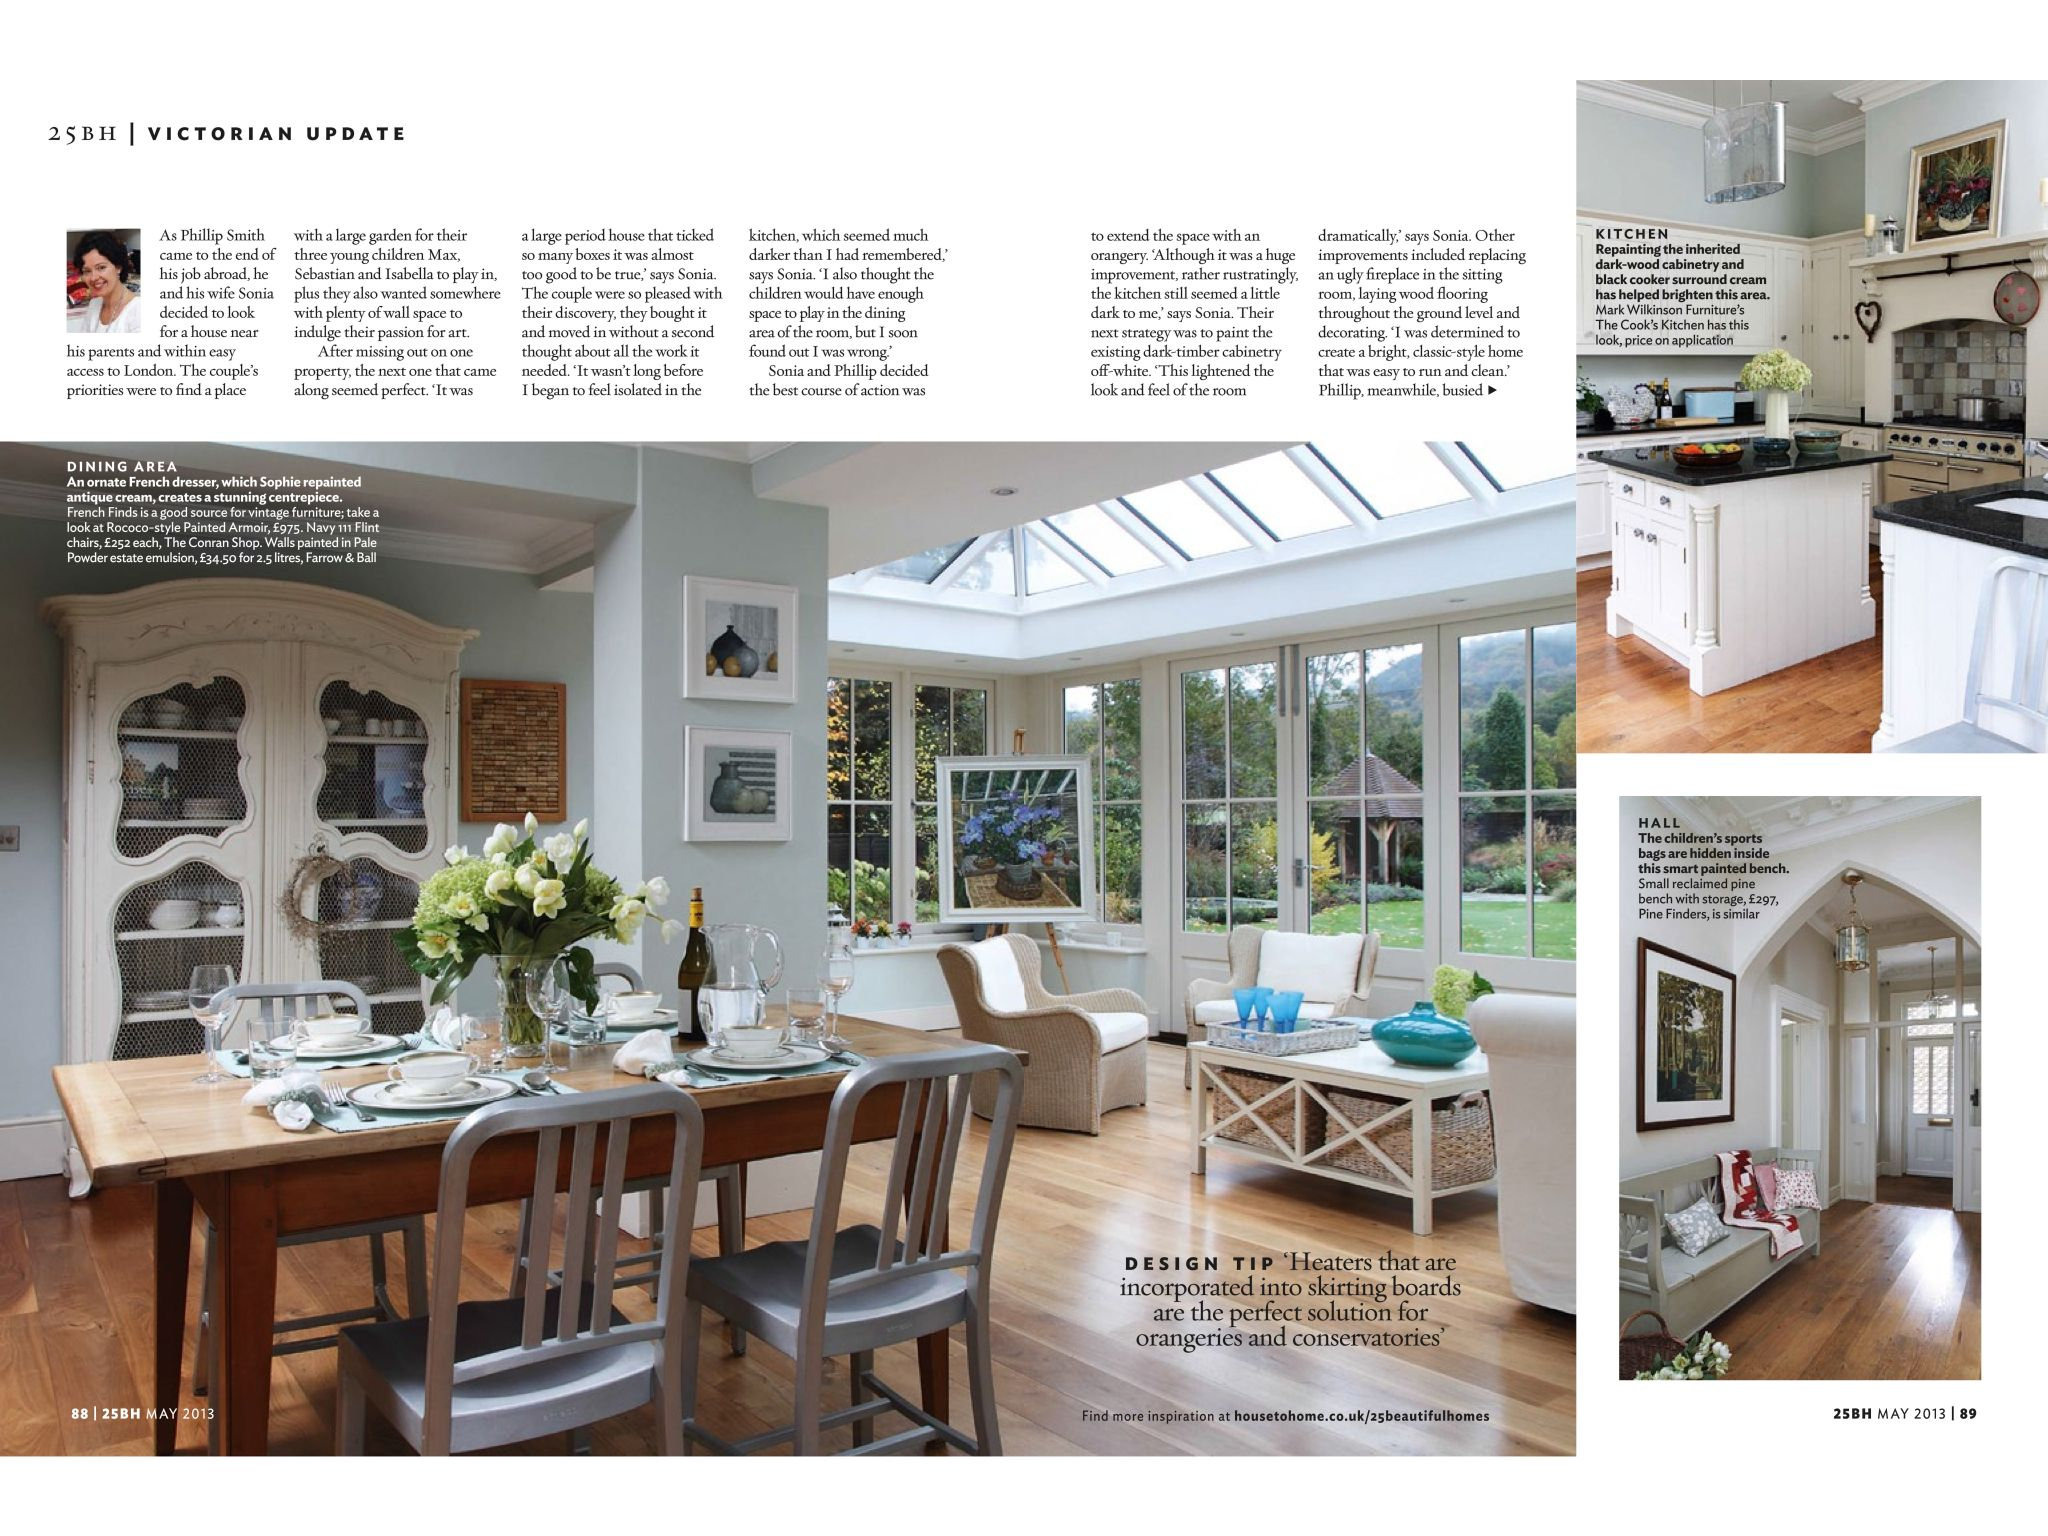 Modern country style farrow and ball pale powder colour case study - Walls In Pale Powder Farrow And Ball